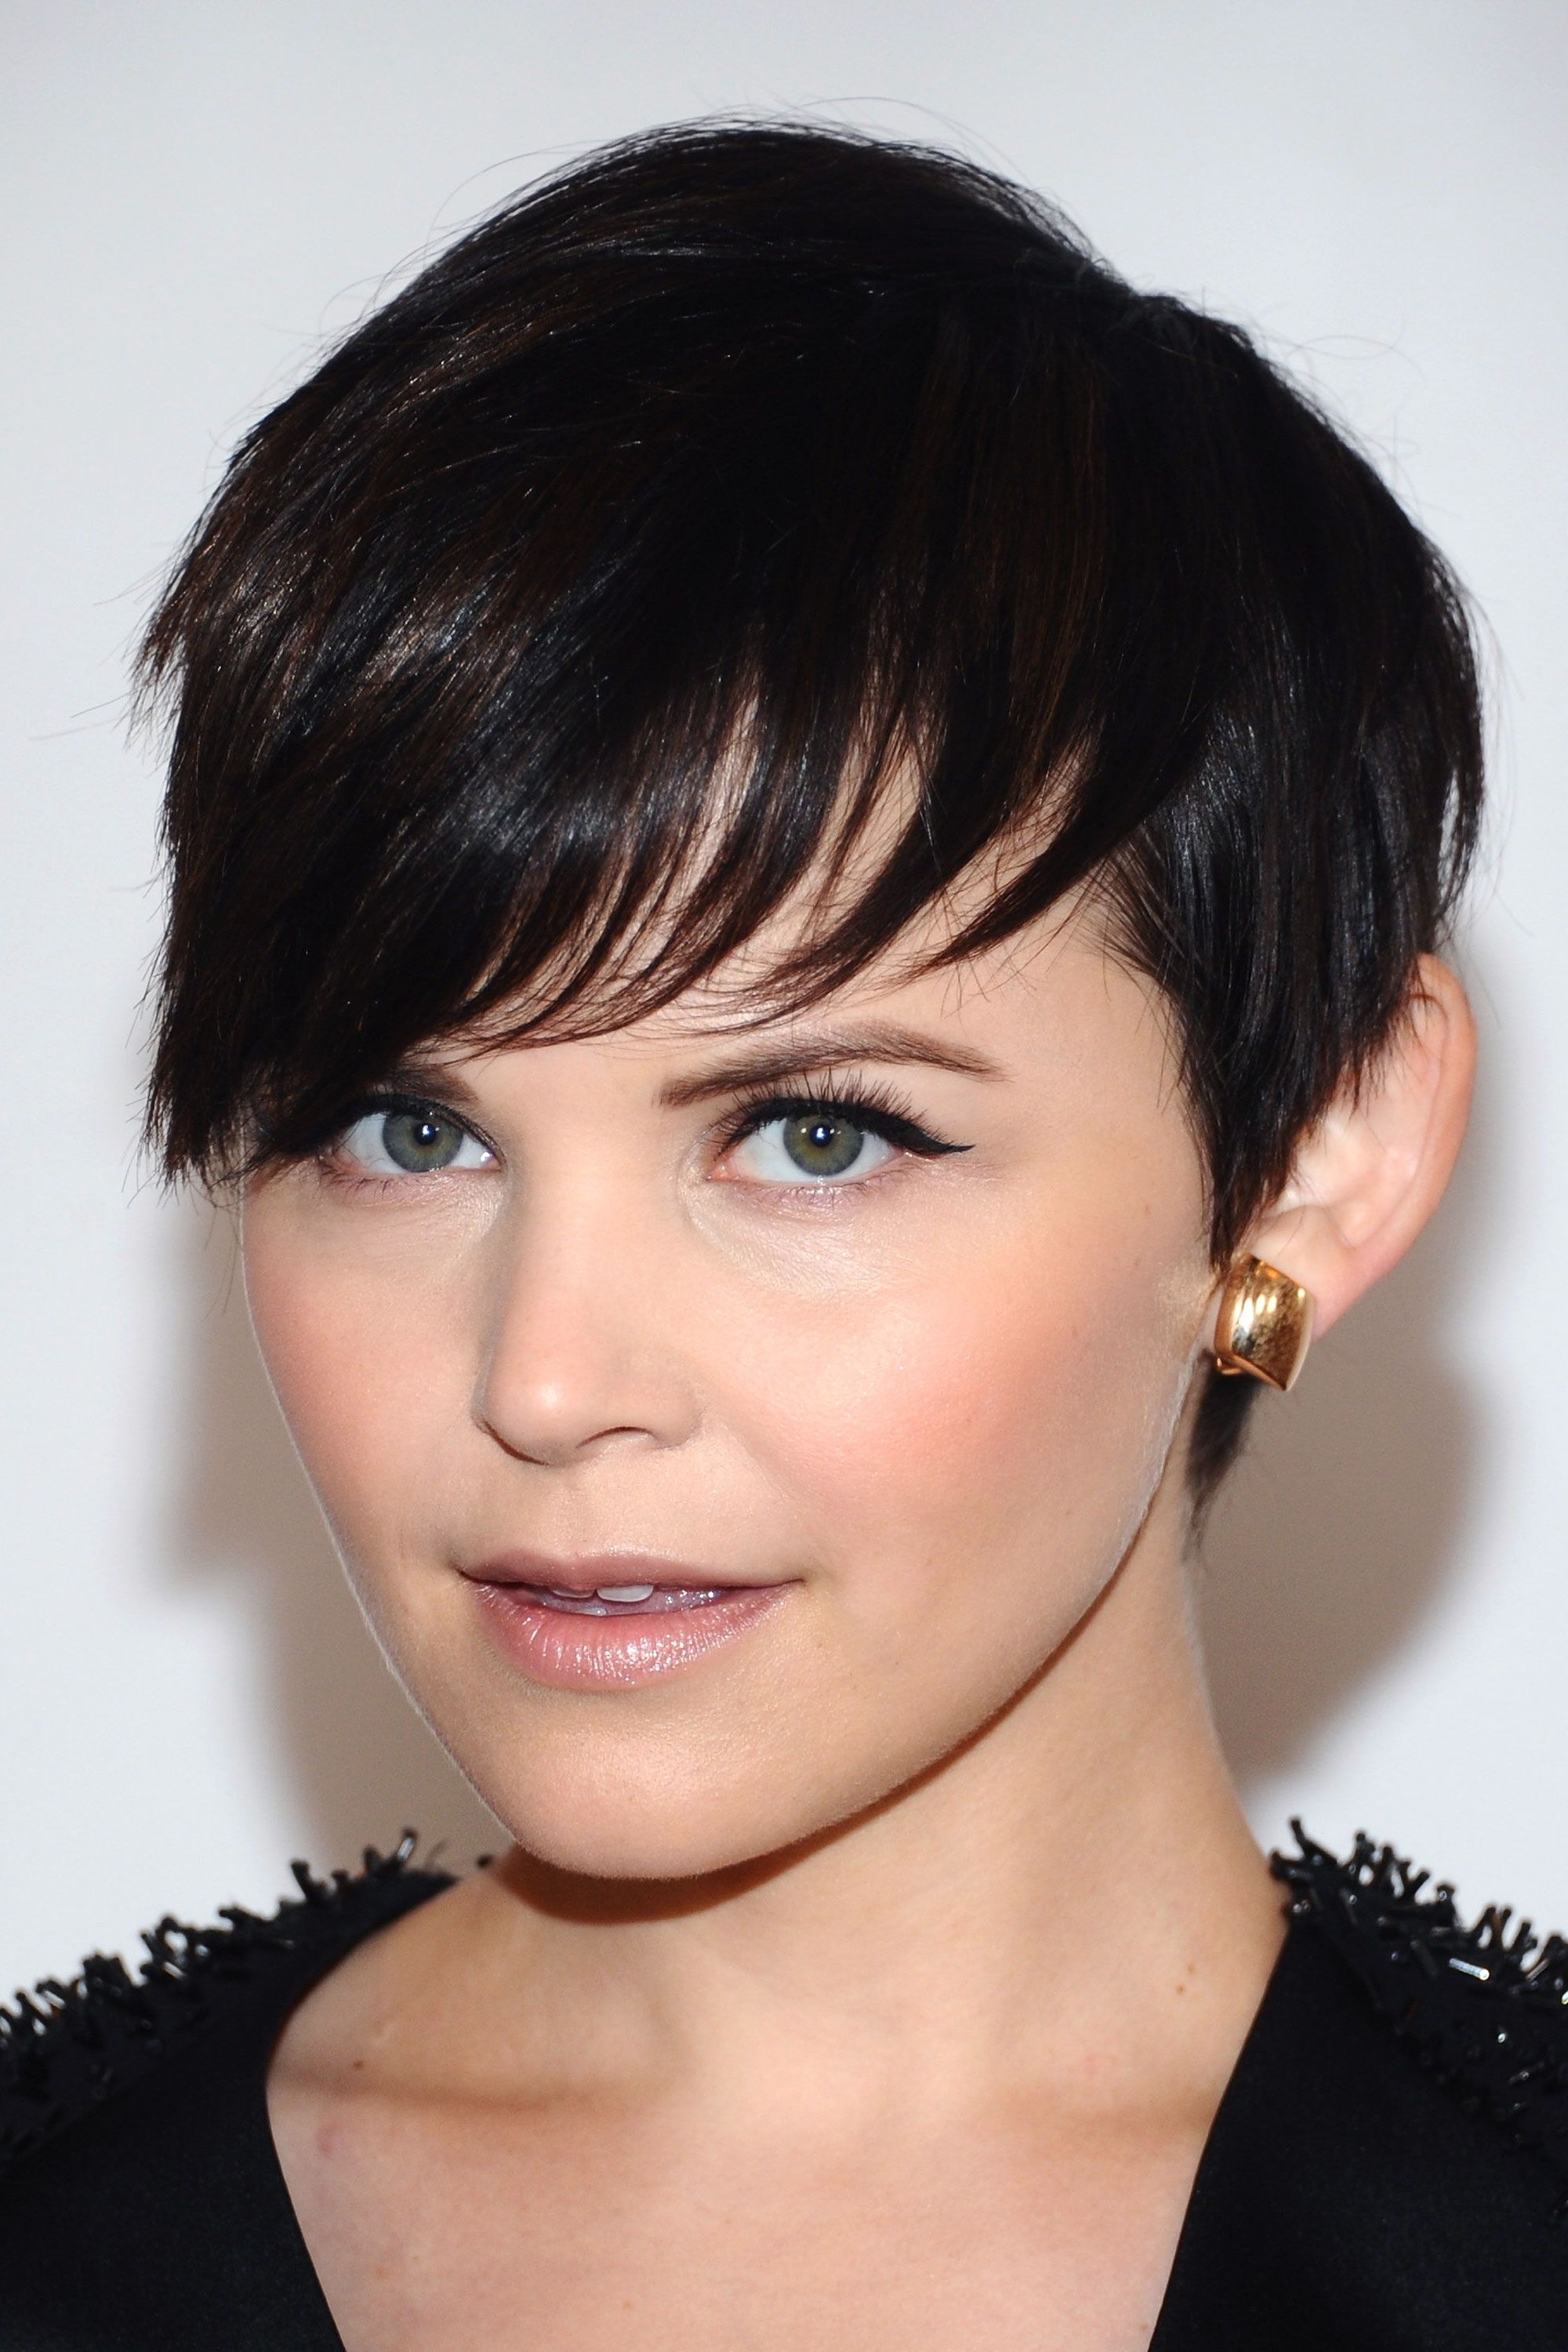 40+ Pixie Cuts We Love For 2018 – Short Pixie Hairstyles From With Regard To Most Up To Date Modified Pixie Hairstyles (View 6 of 15)